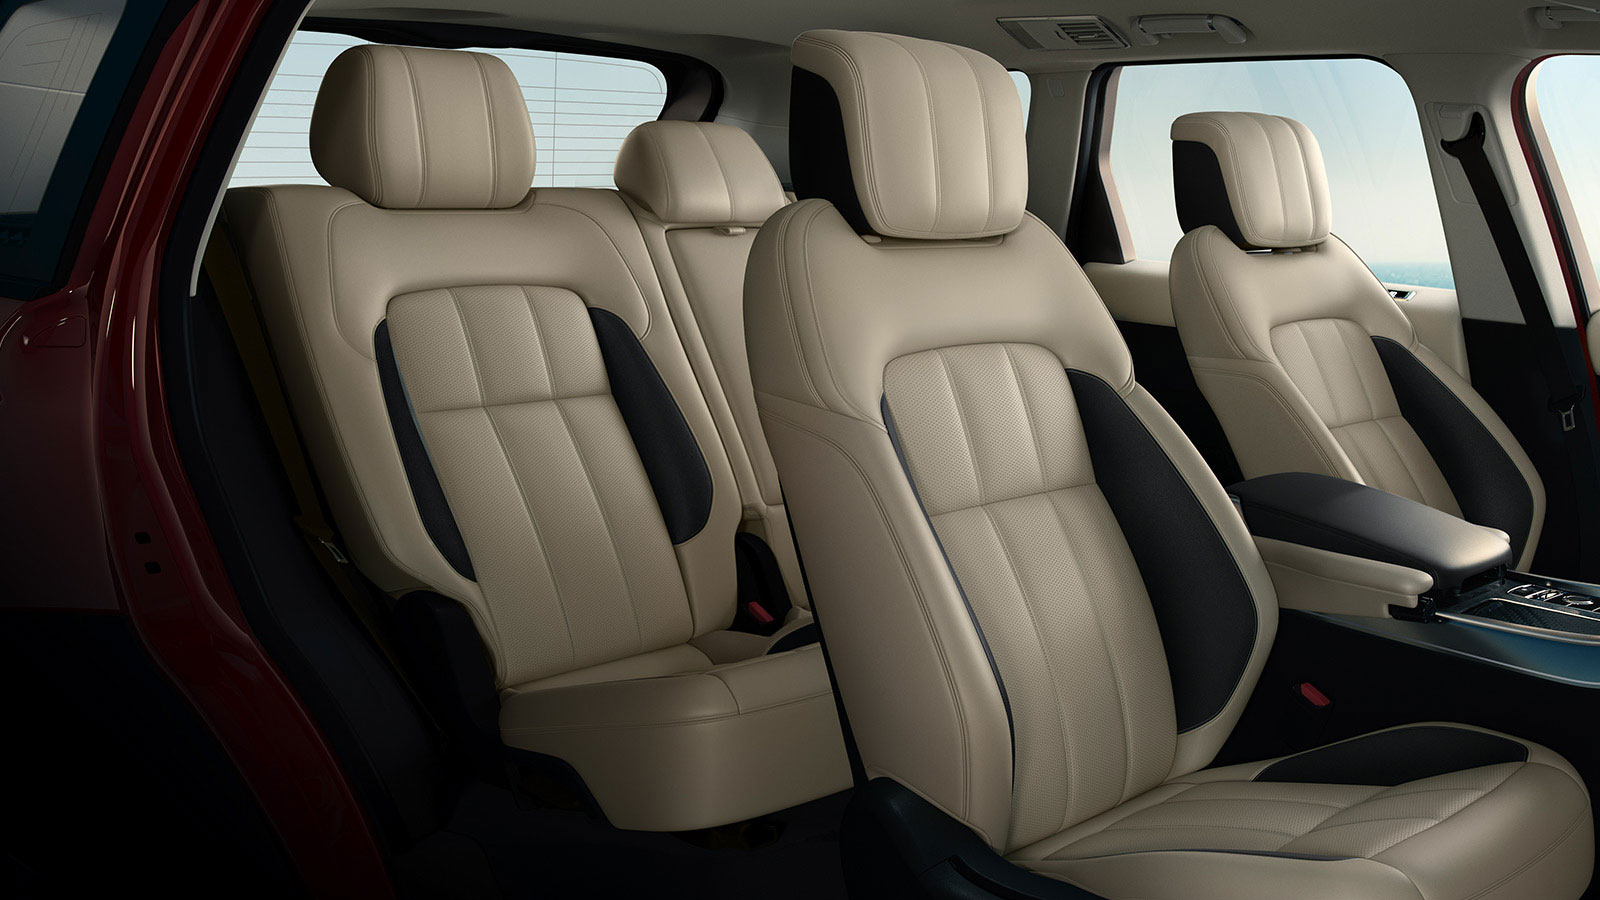 Duo-tone seats with suedecloth bolsters